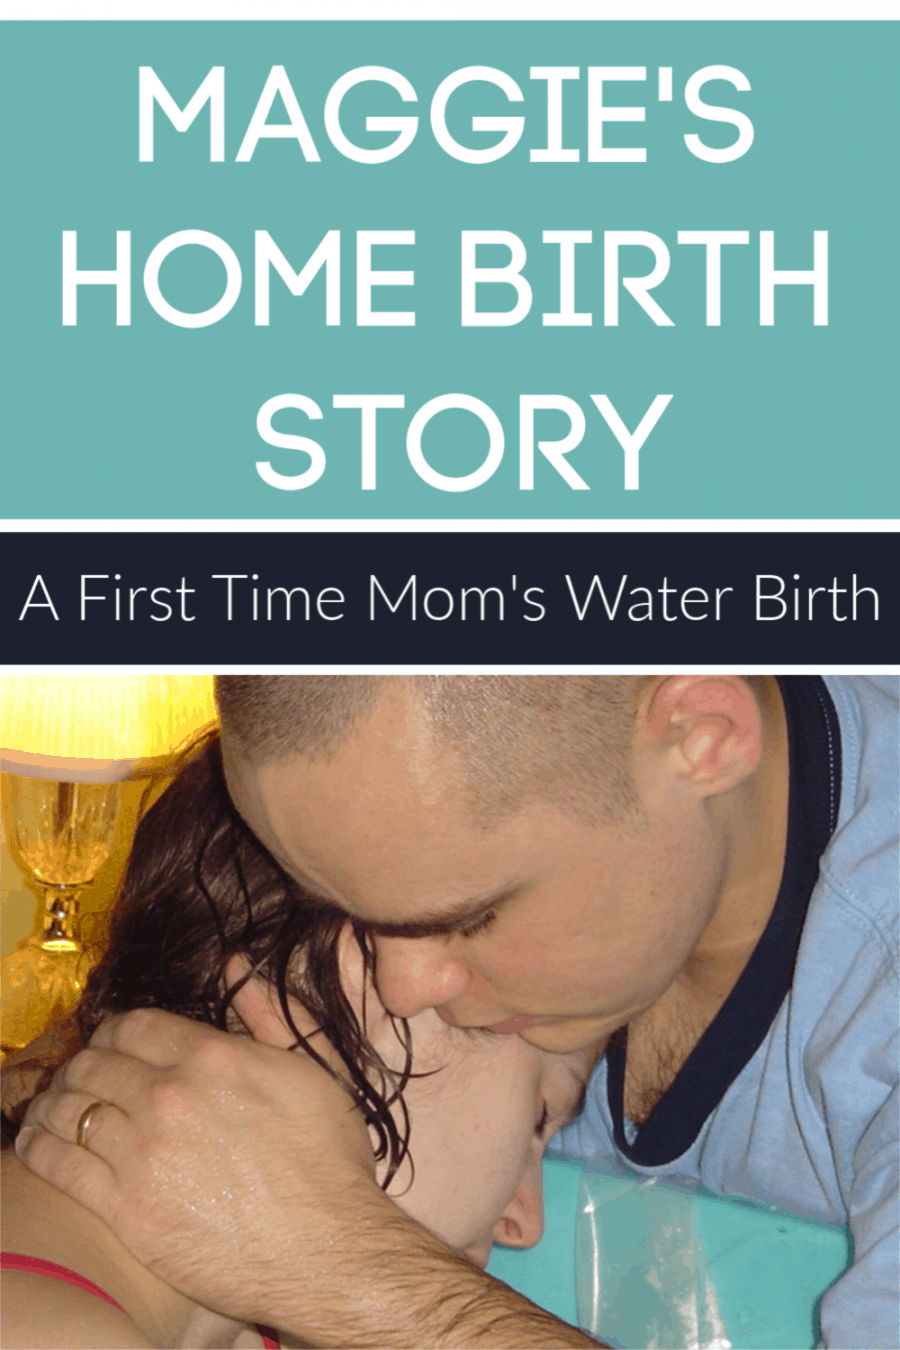 Maggie's Home Birth Story - a water birth story